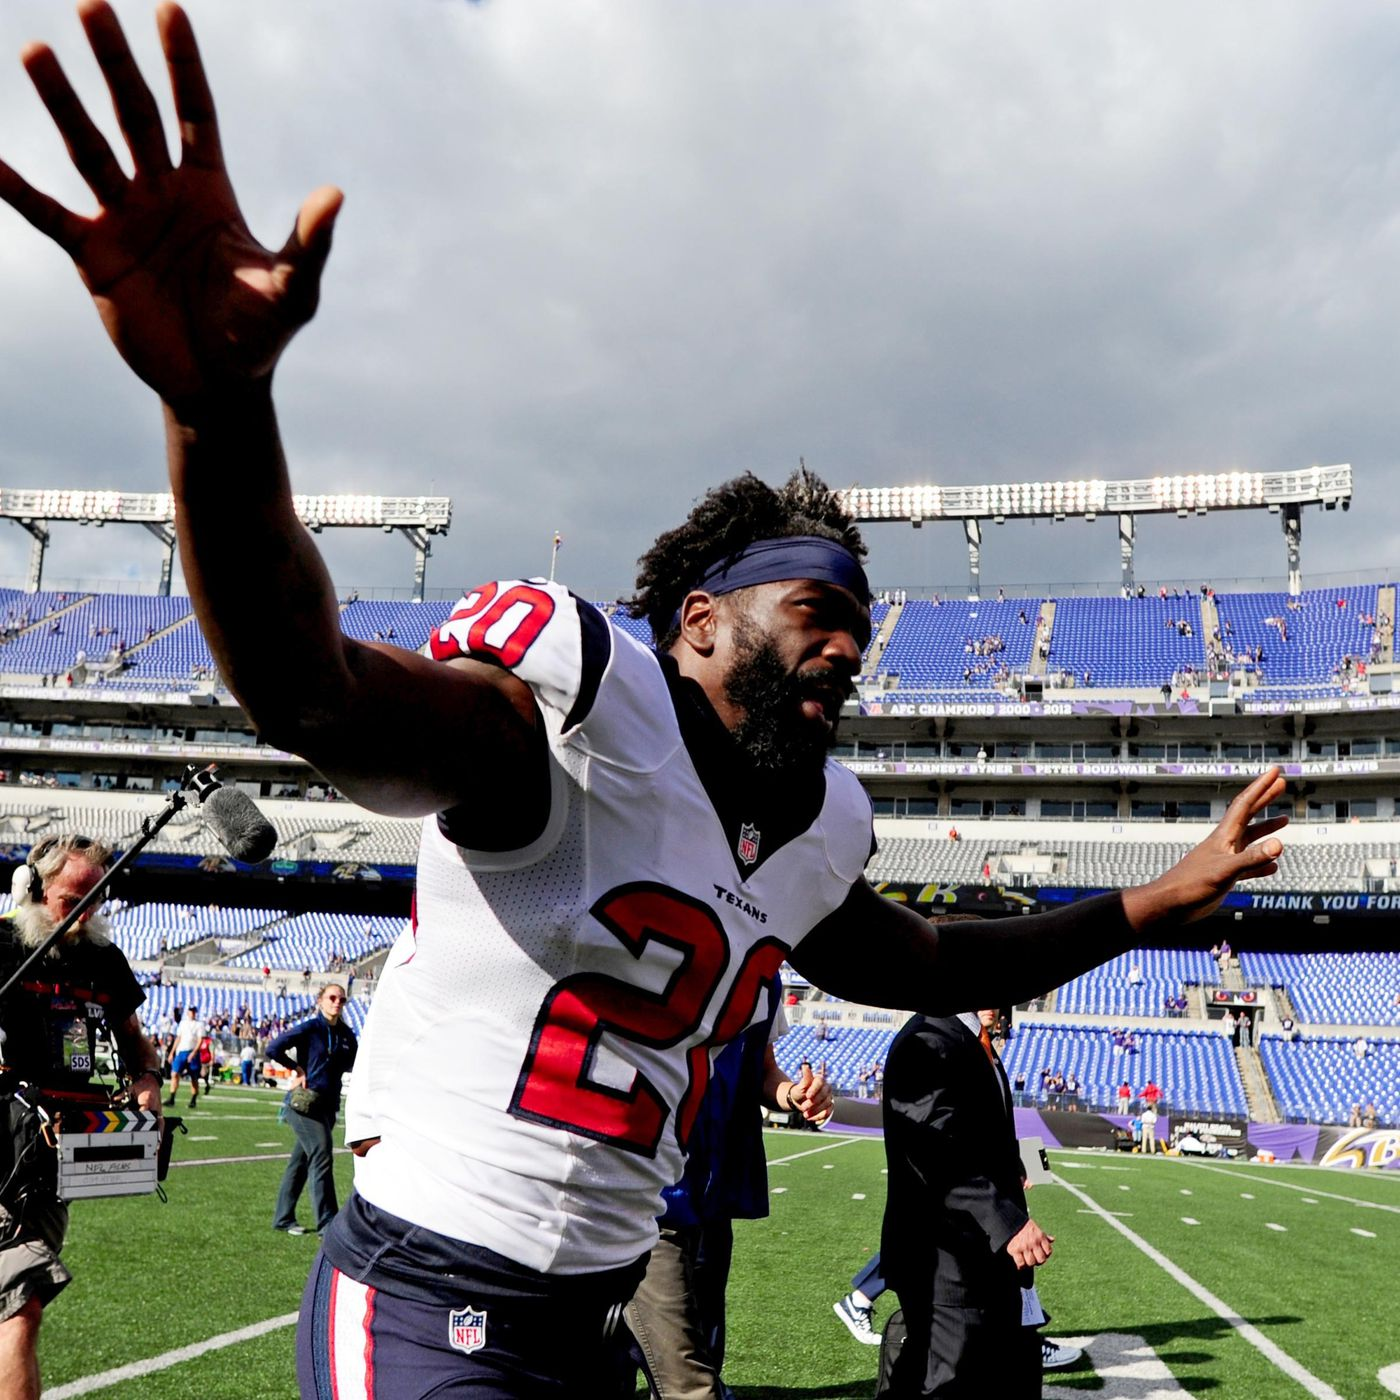 low cost e2d3a 54e40 BREAKING NEWS: Ed Reed Signs With New York Jets - Battle Red ...